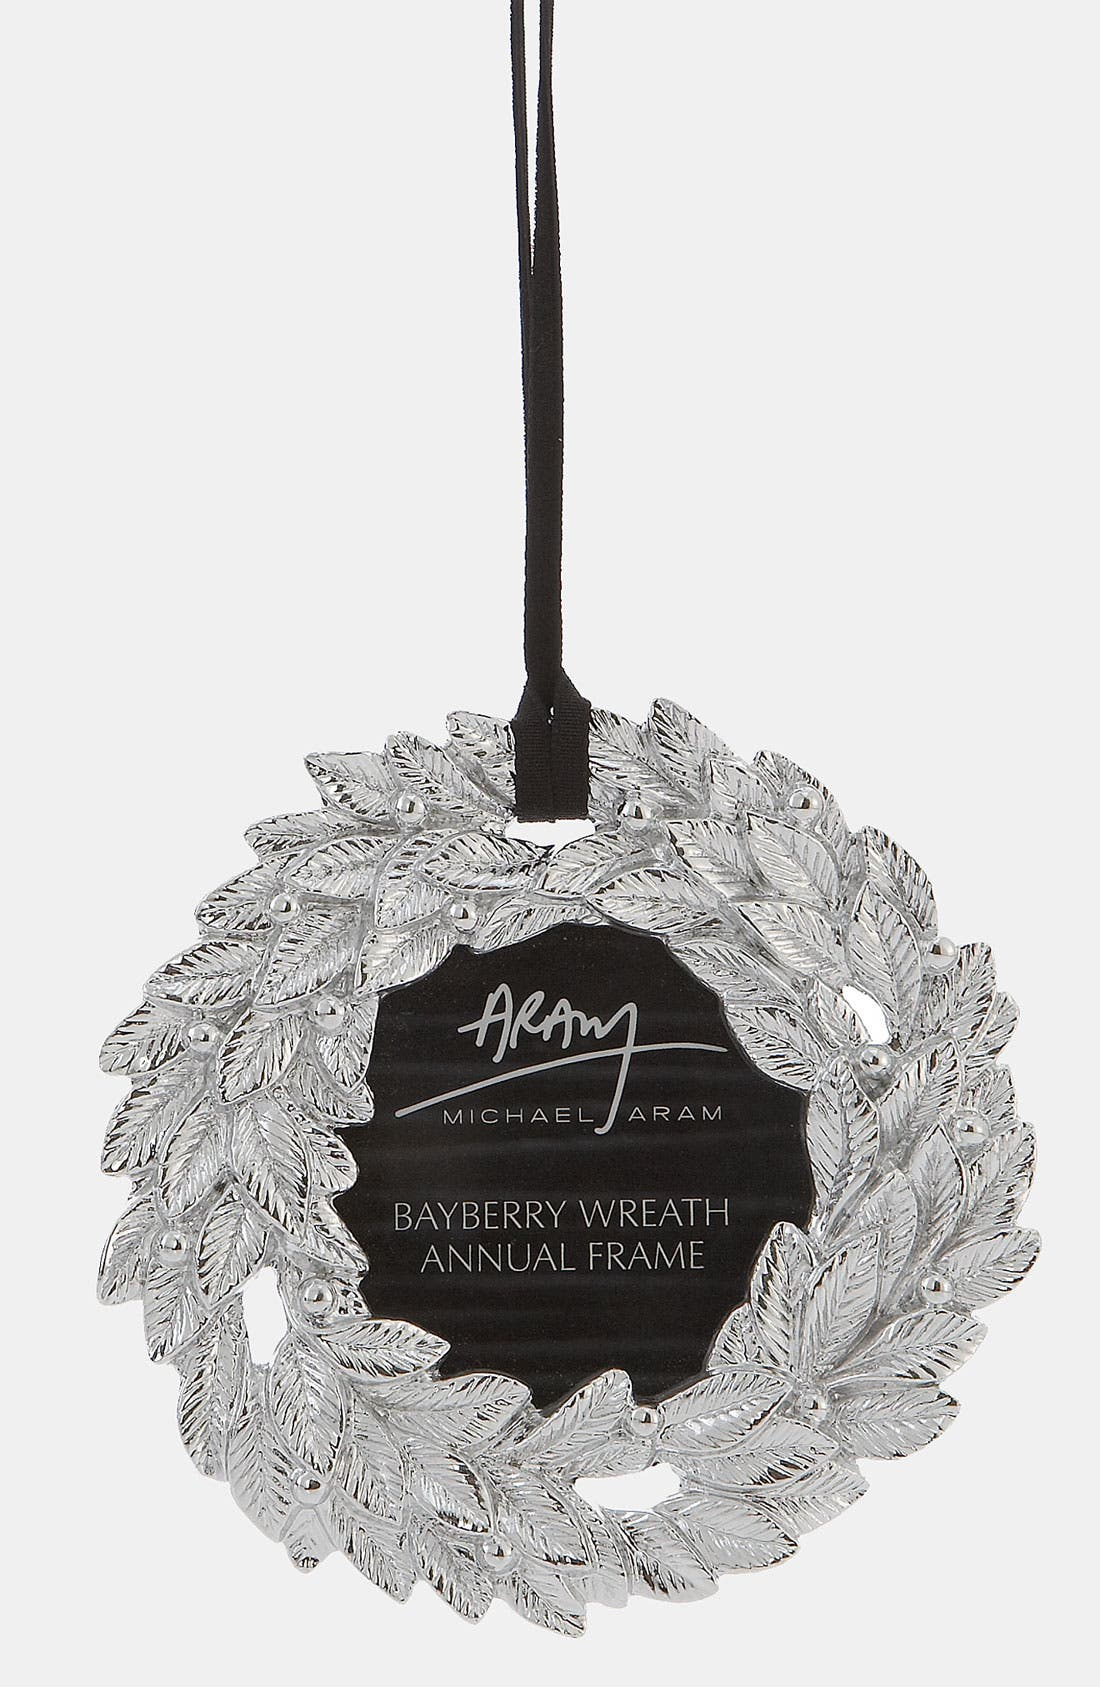 Main Image - Michael Aram 'Bayberry Wreath' Annual Frame Ornament